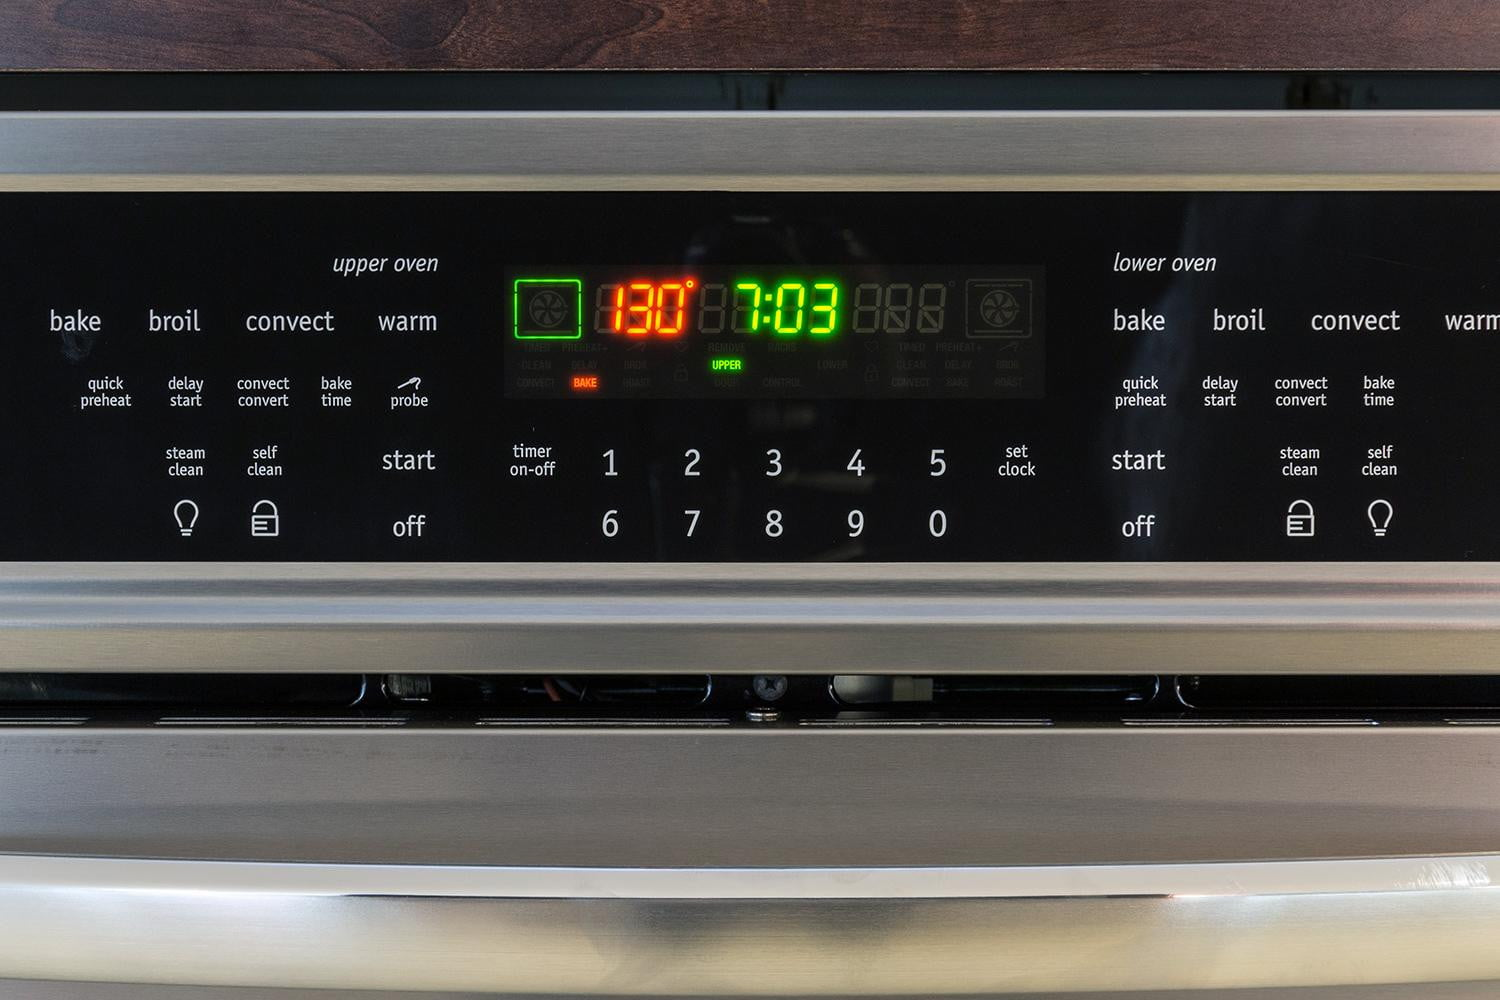 frigidaire fget3065pf review double electric wall oven frigidaire fget3065pf review double electric wall oven - Frigidaire Gallery Stove